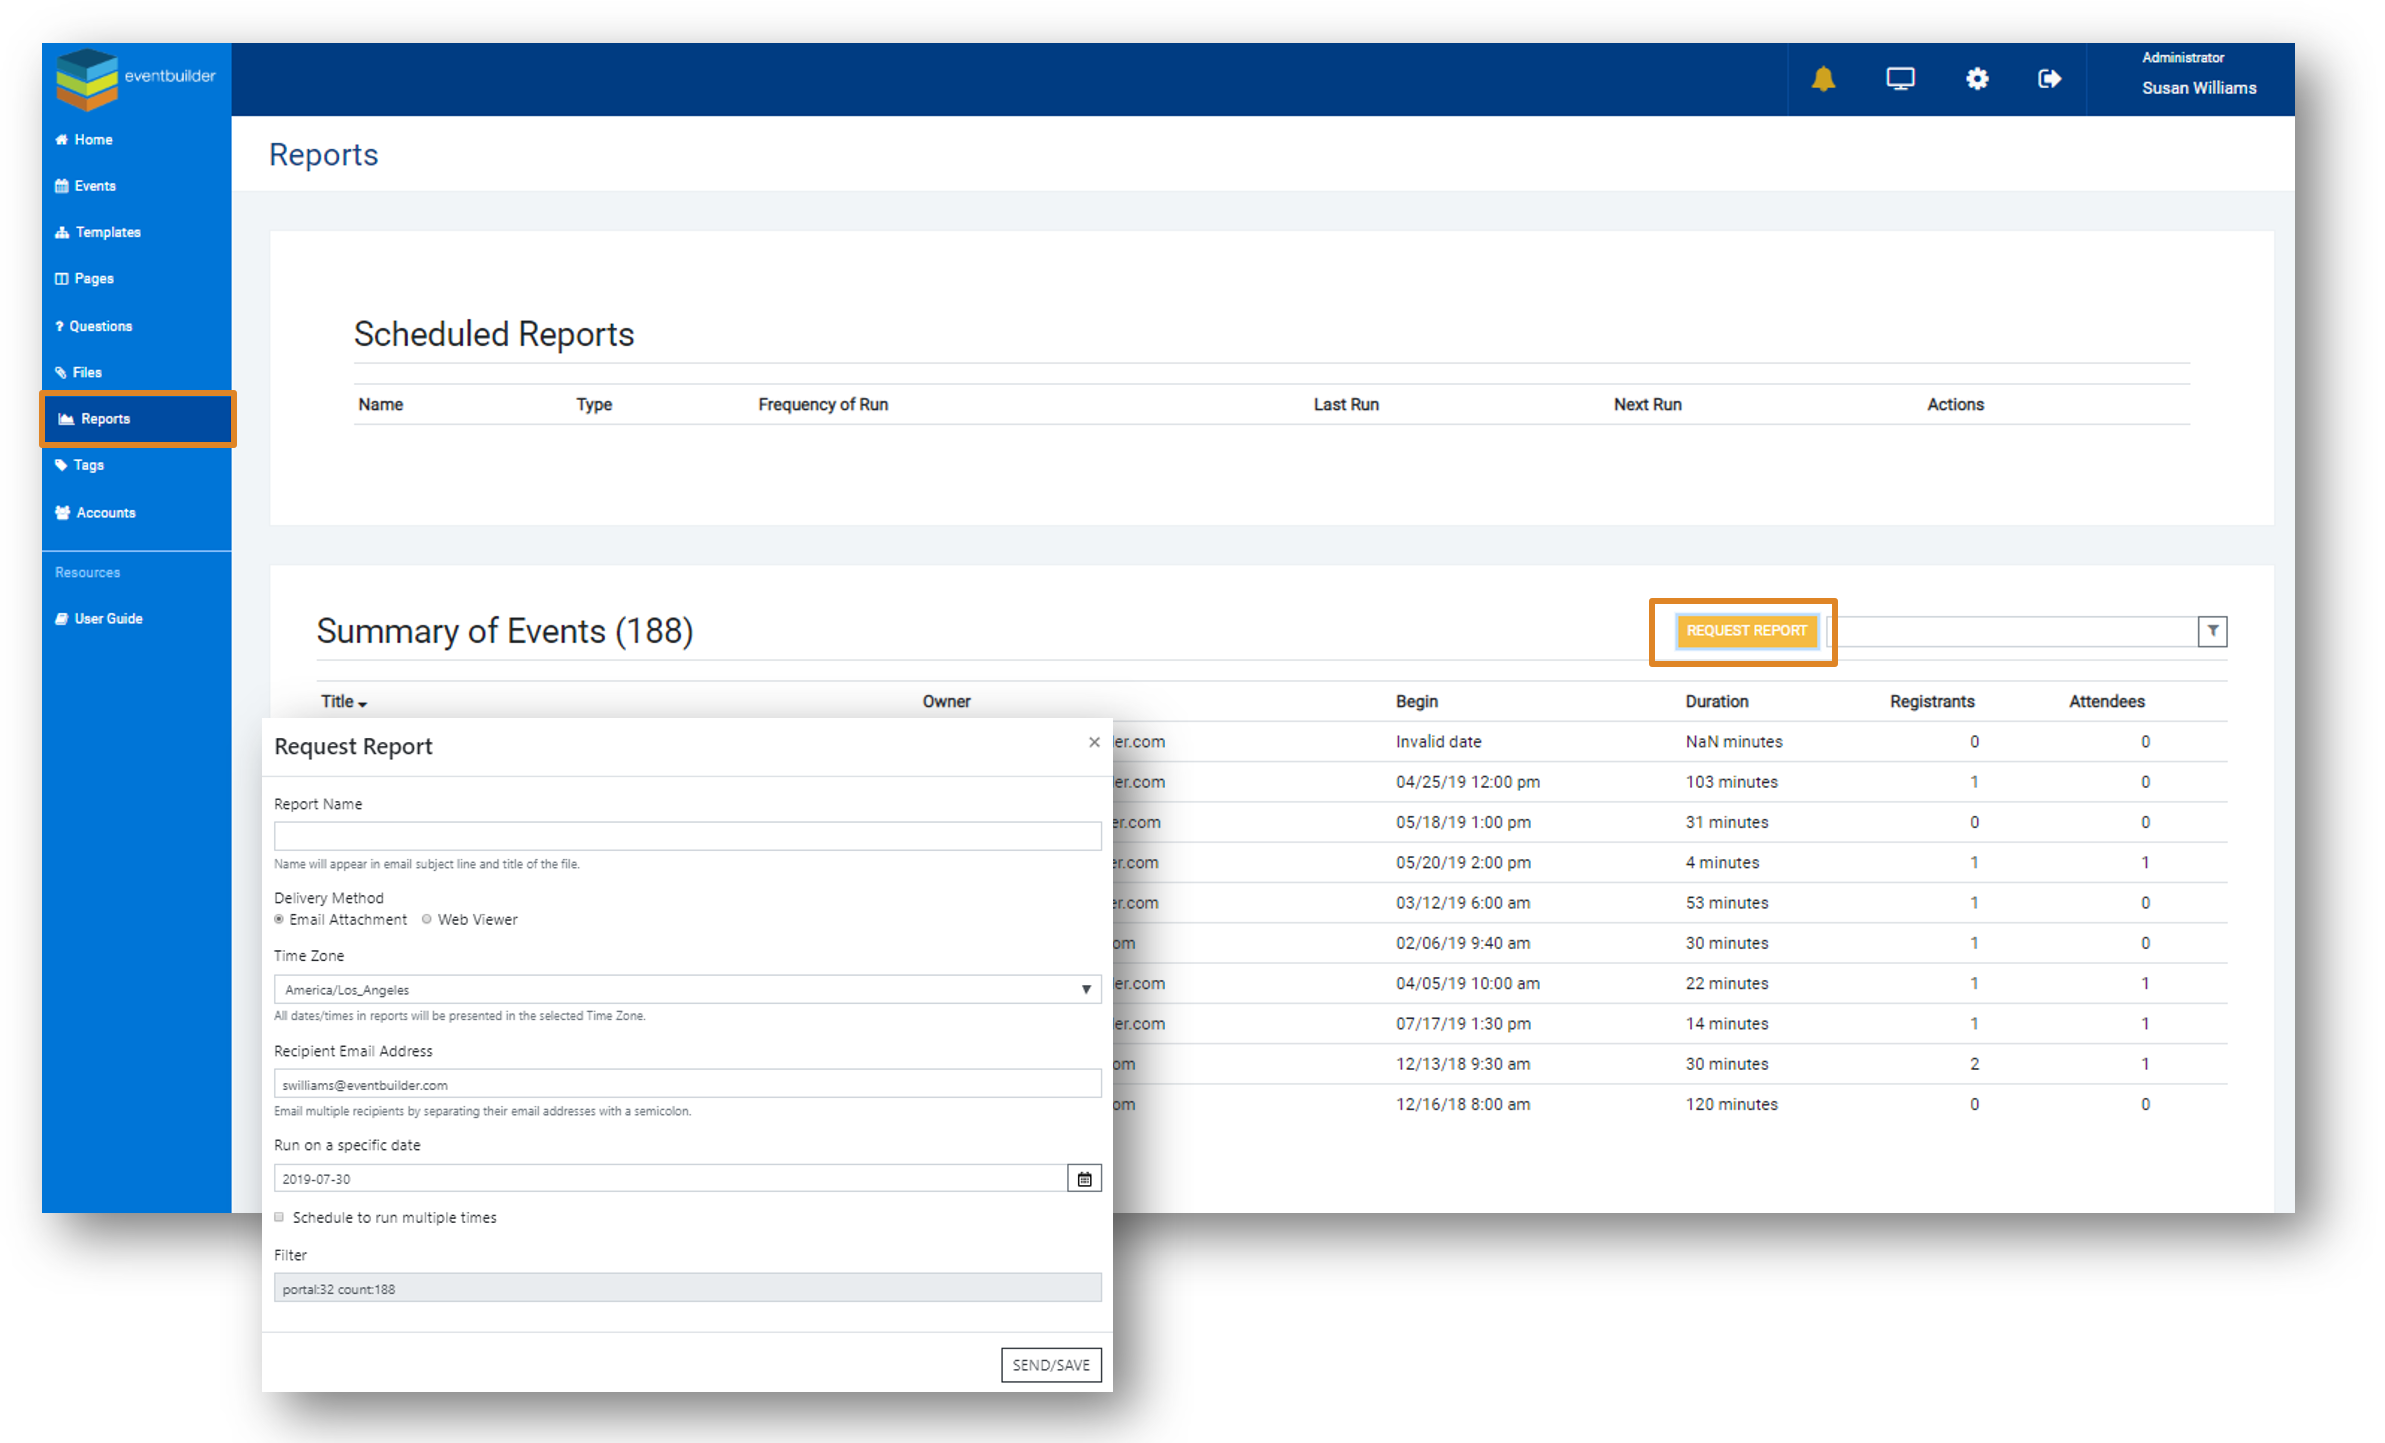 Screenshot: Account Dashboard with Reports option highlighted, the Reports options page, and the Report details window open.